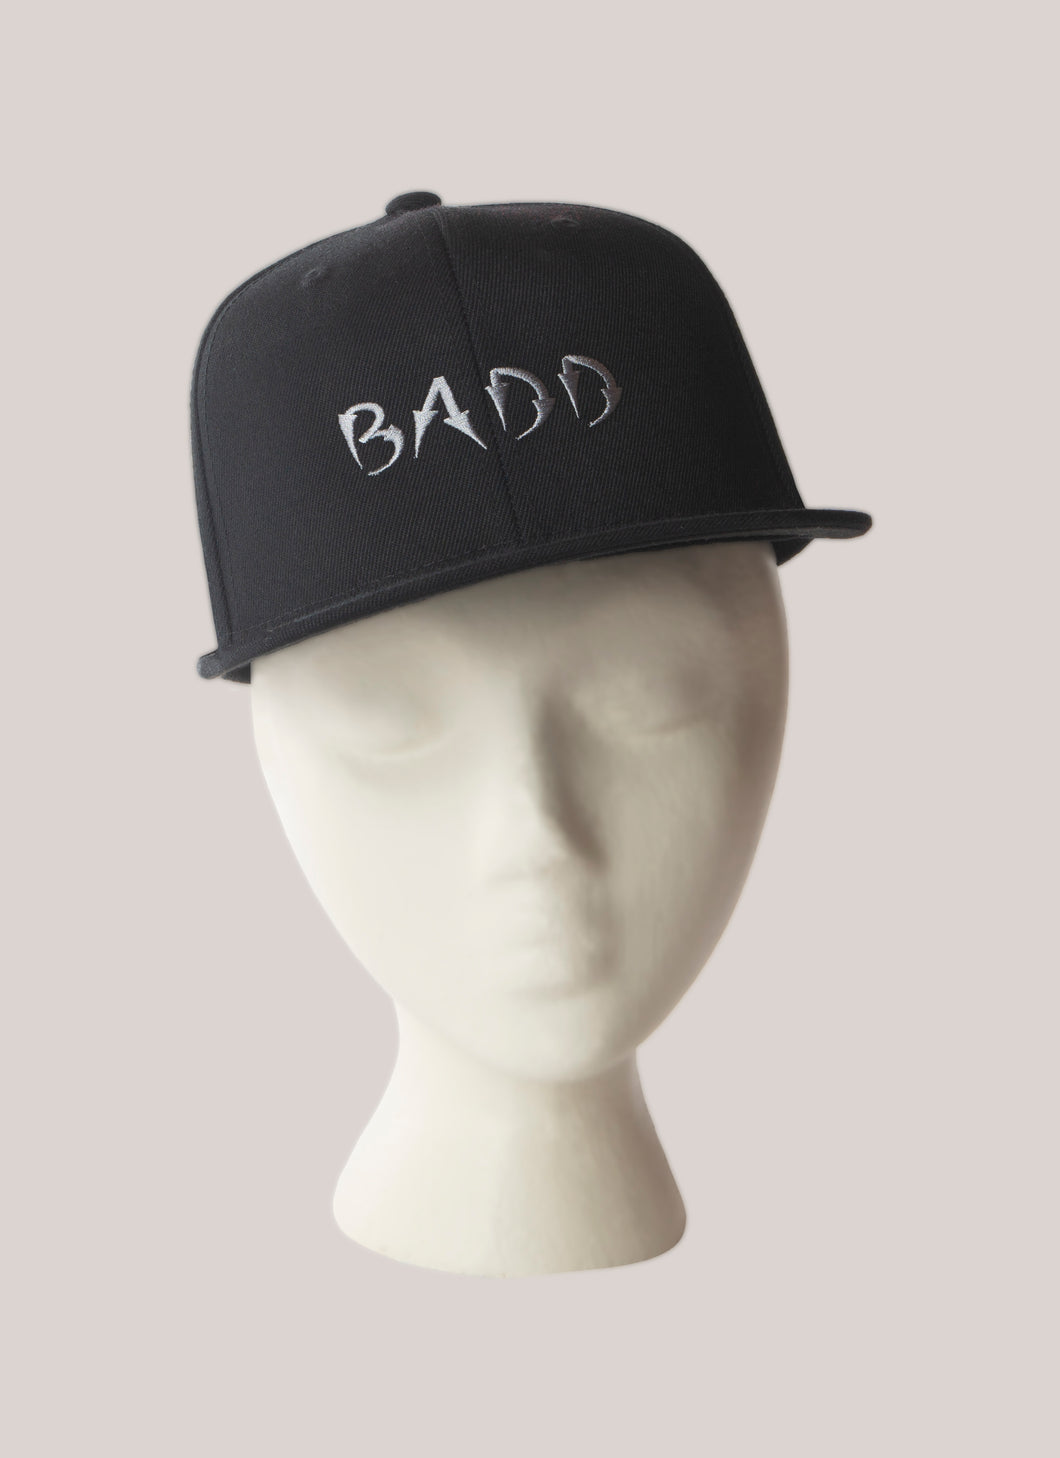 BADD Snapback Hat Black-Grey Logo